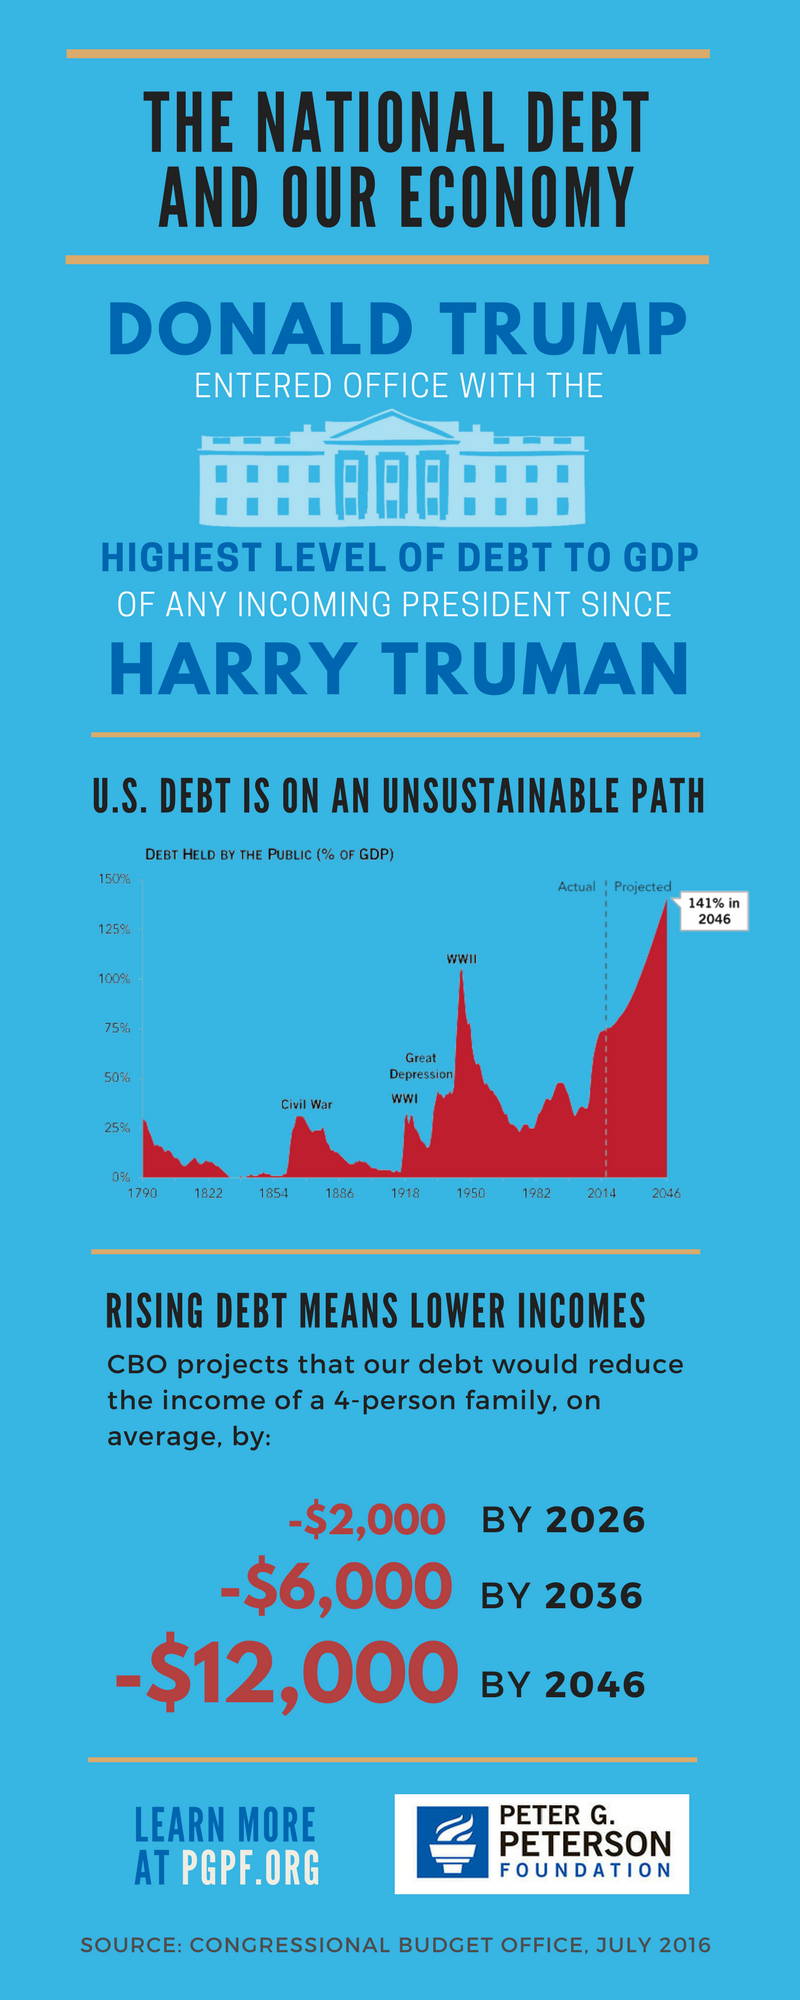 The National Debt and Our Economy